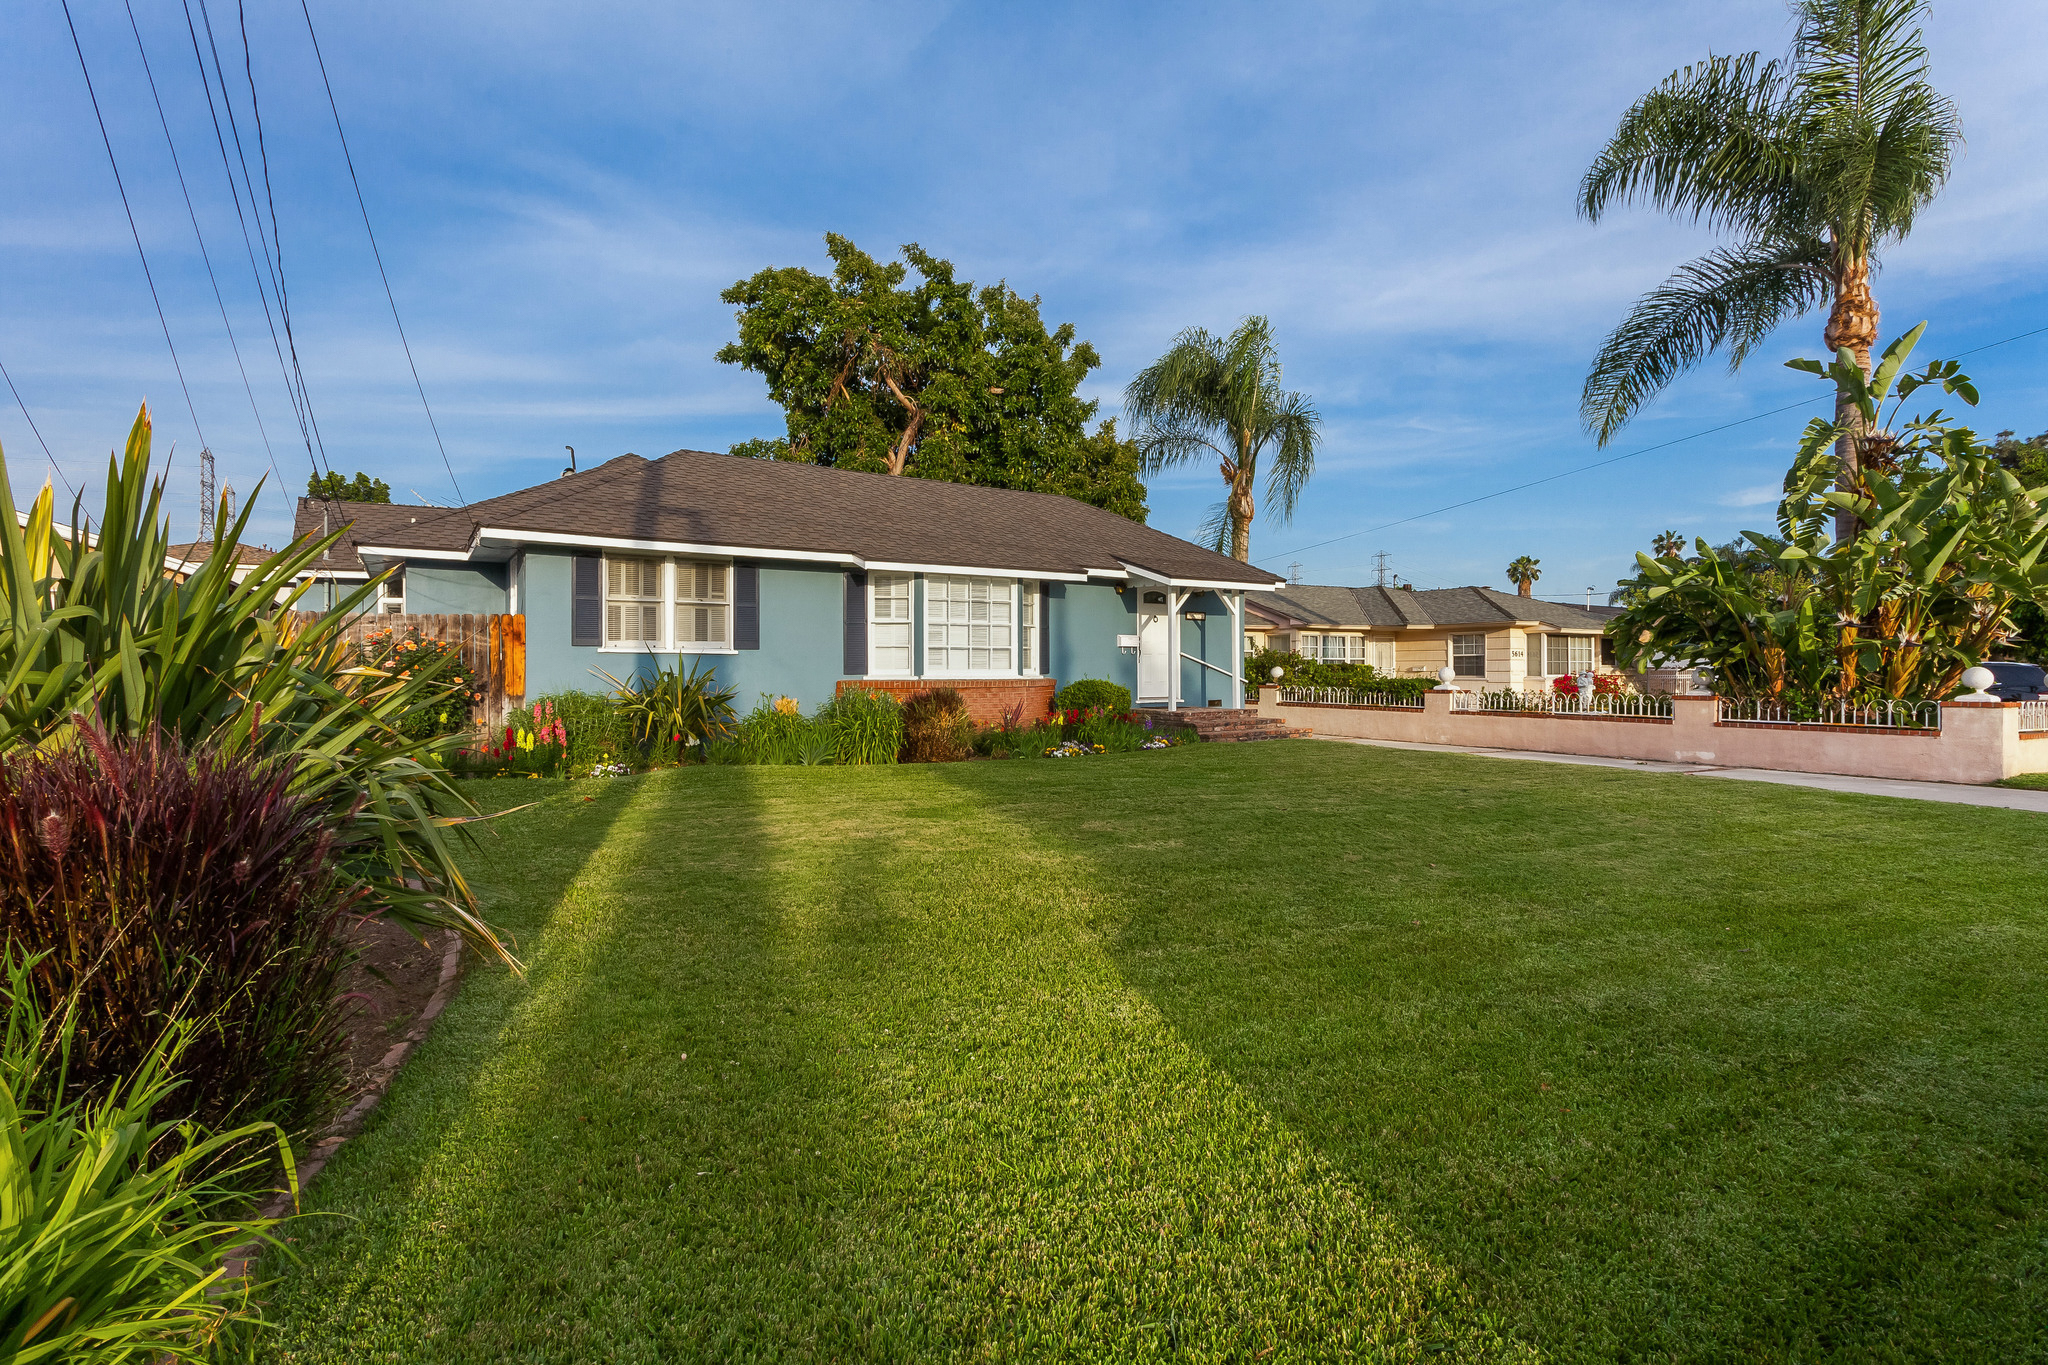 mls photography for san gabriel